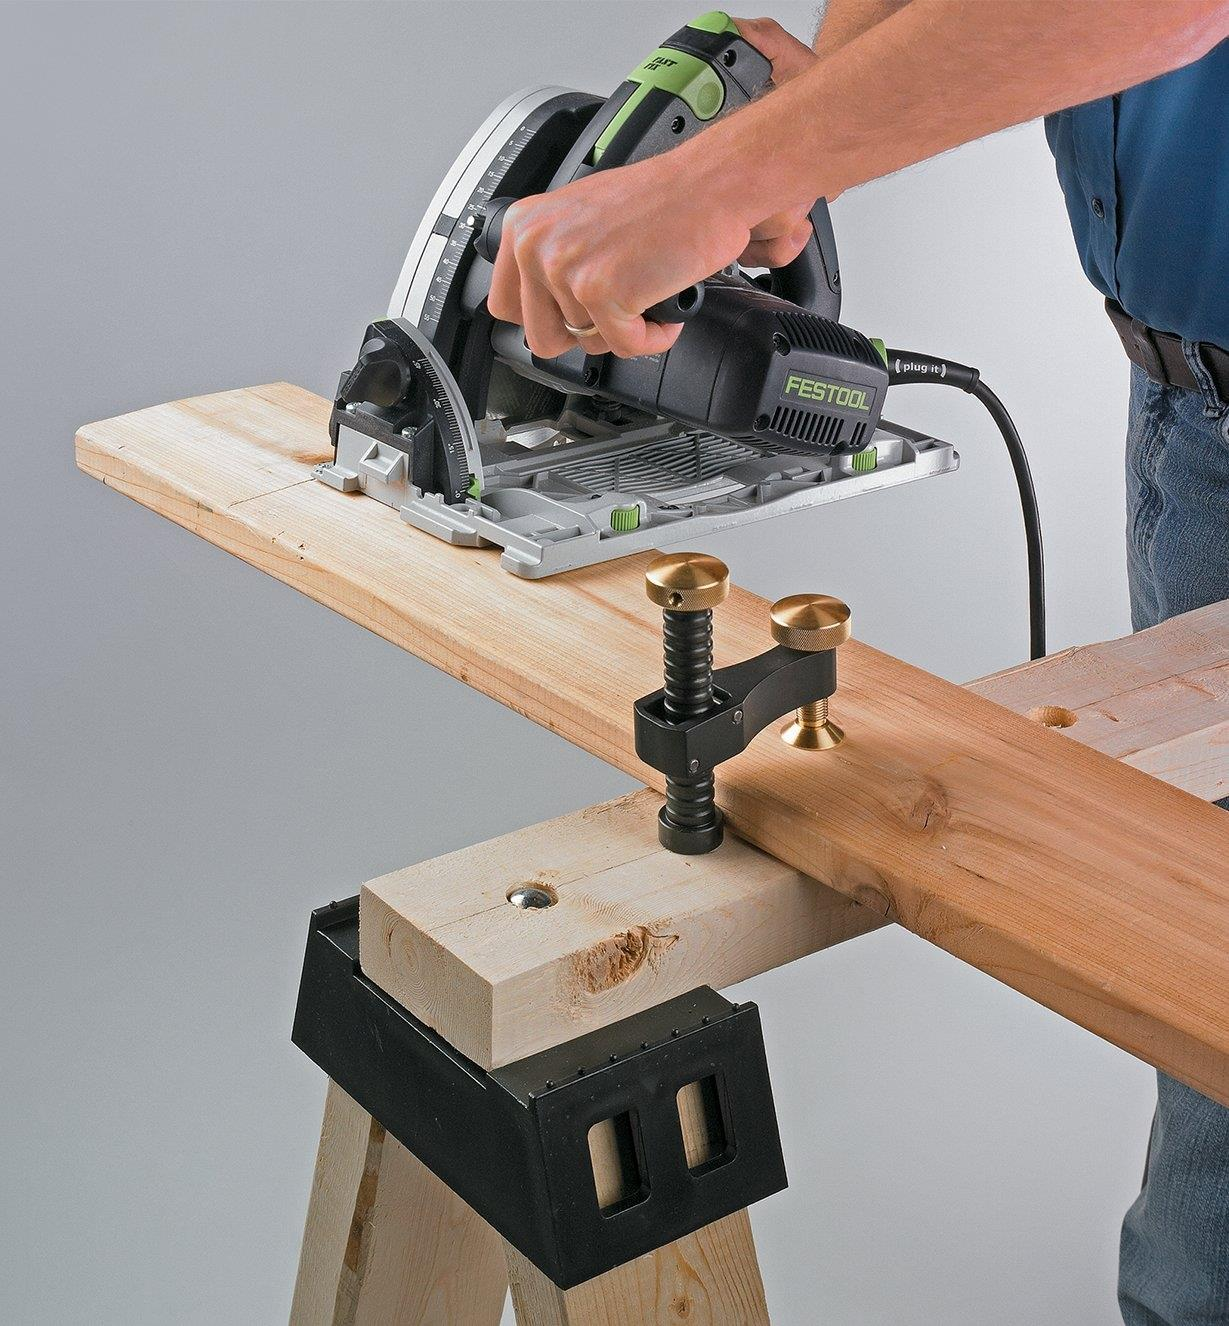 Veritas Surface Clamp holding a board to a sawhorse while the board is being cut with a circular saw